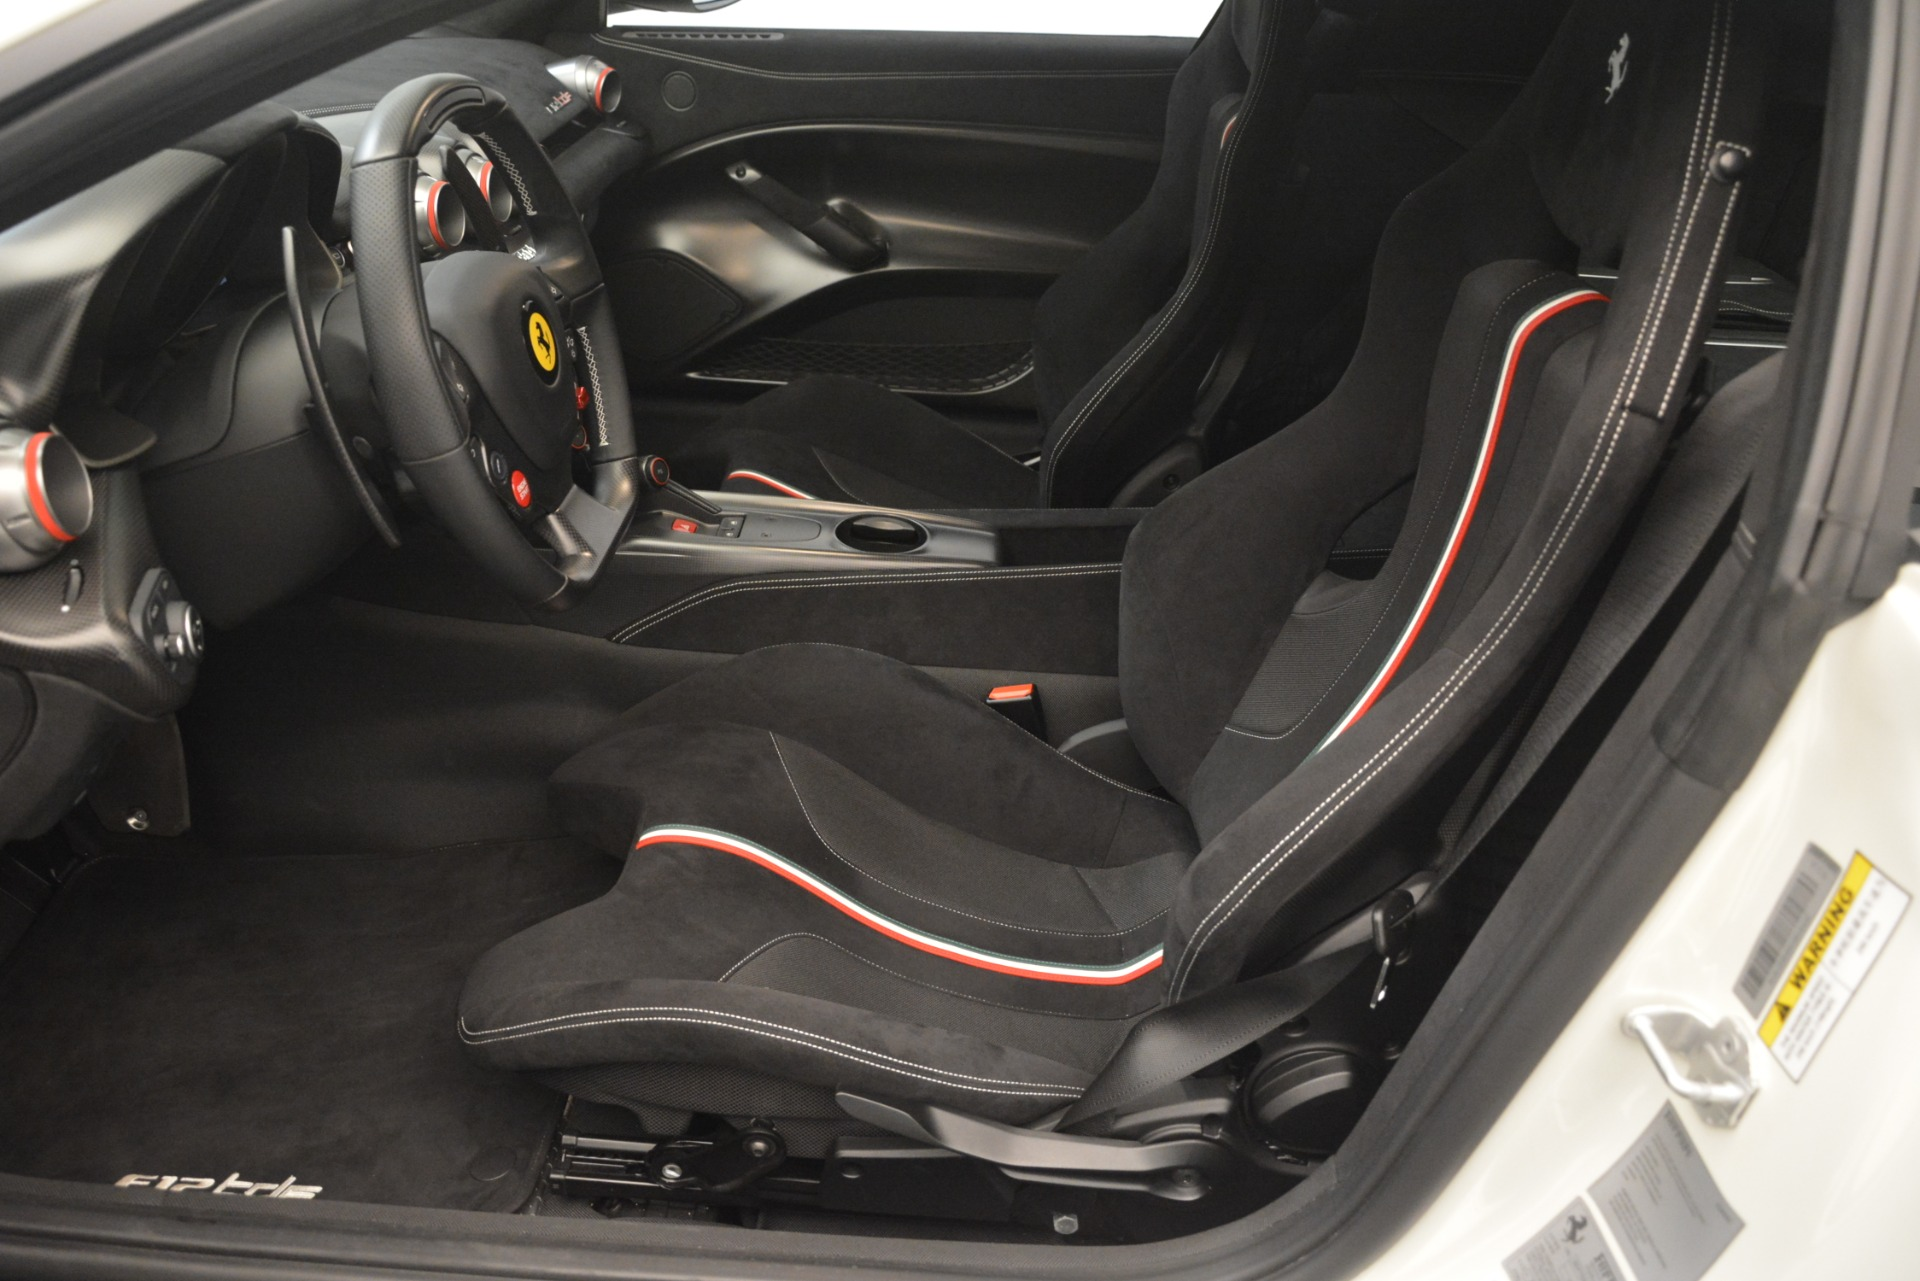 Used 2017 Ferrari F12tdf  For Sale In Westport, CT 3183_p14